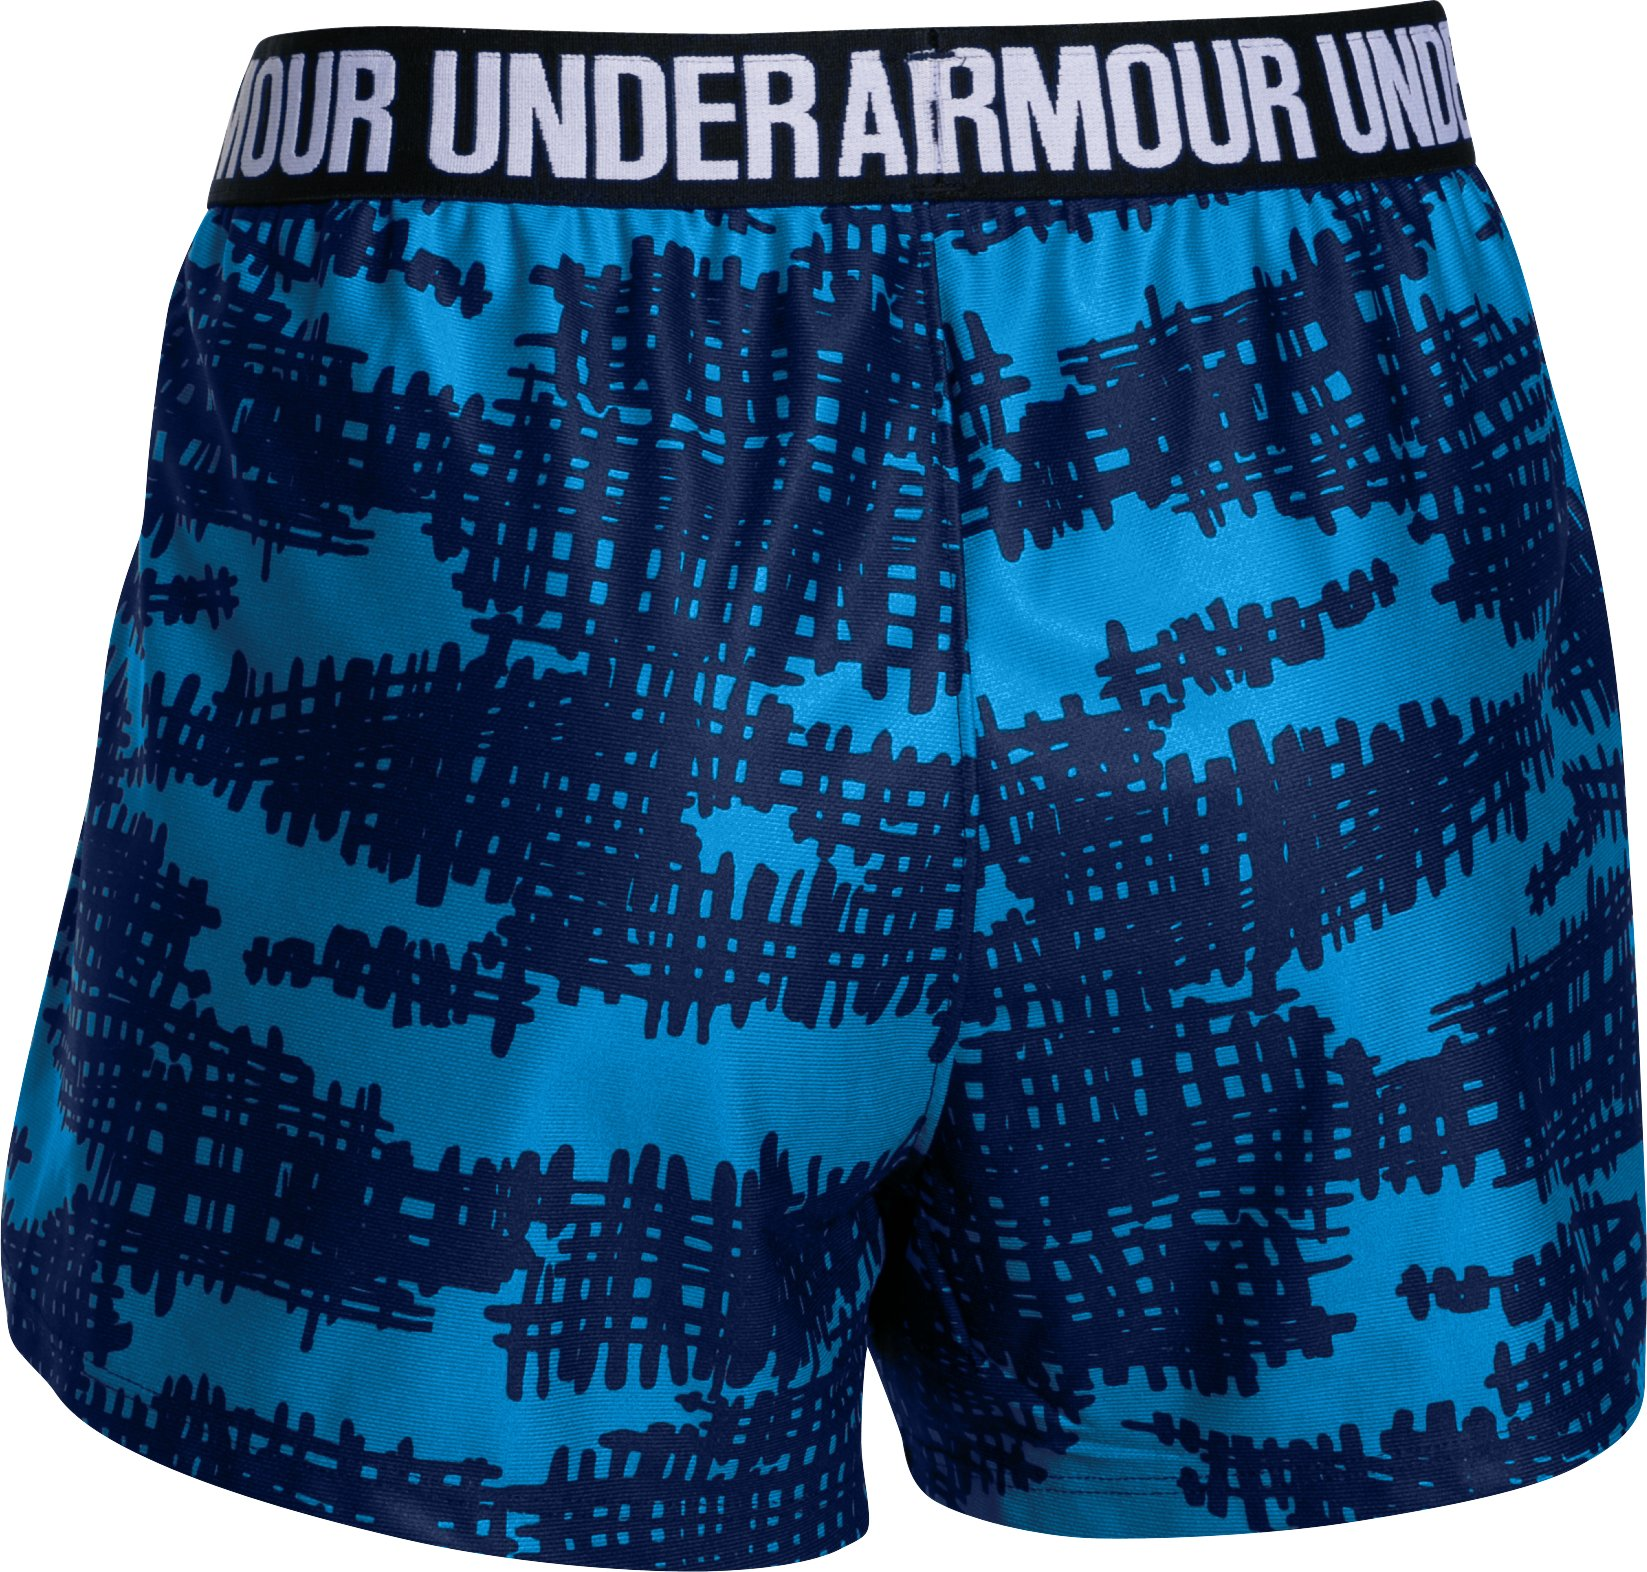 Women's UA Play Up Short - Graphic, NAVY SEAL, undefined